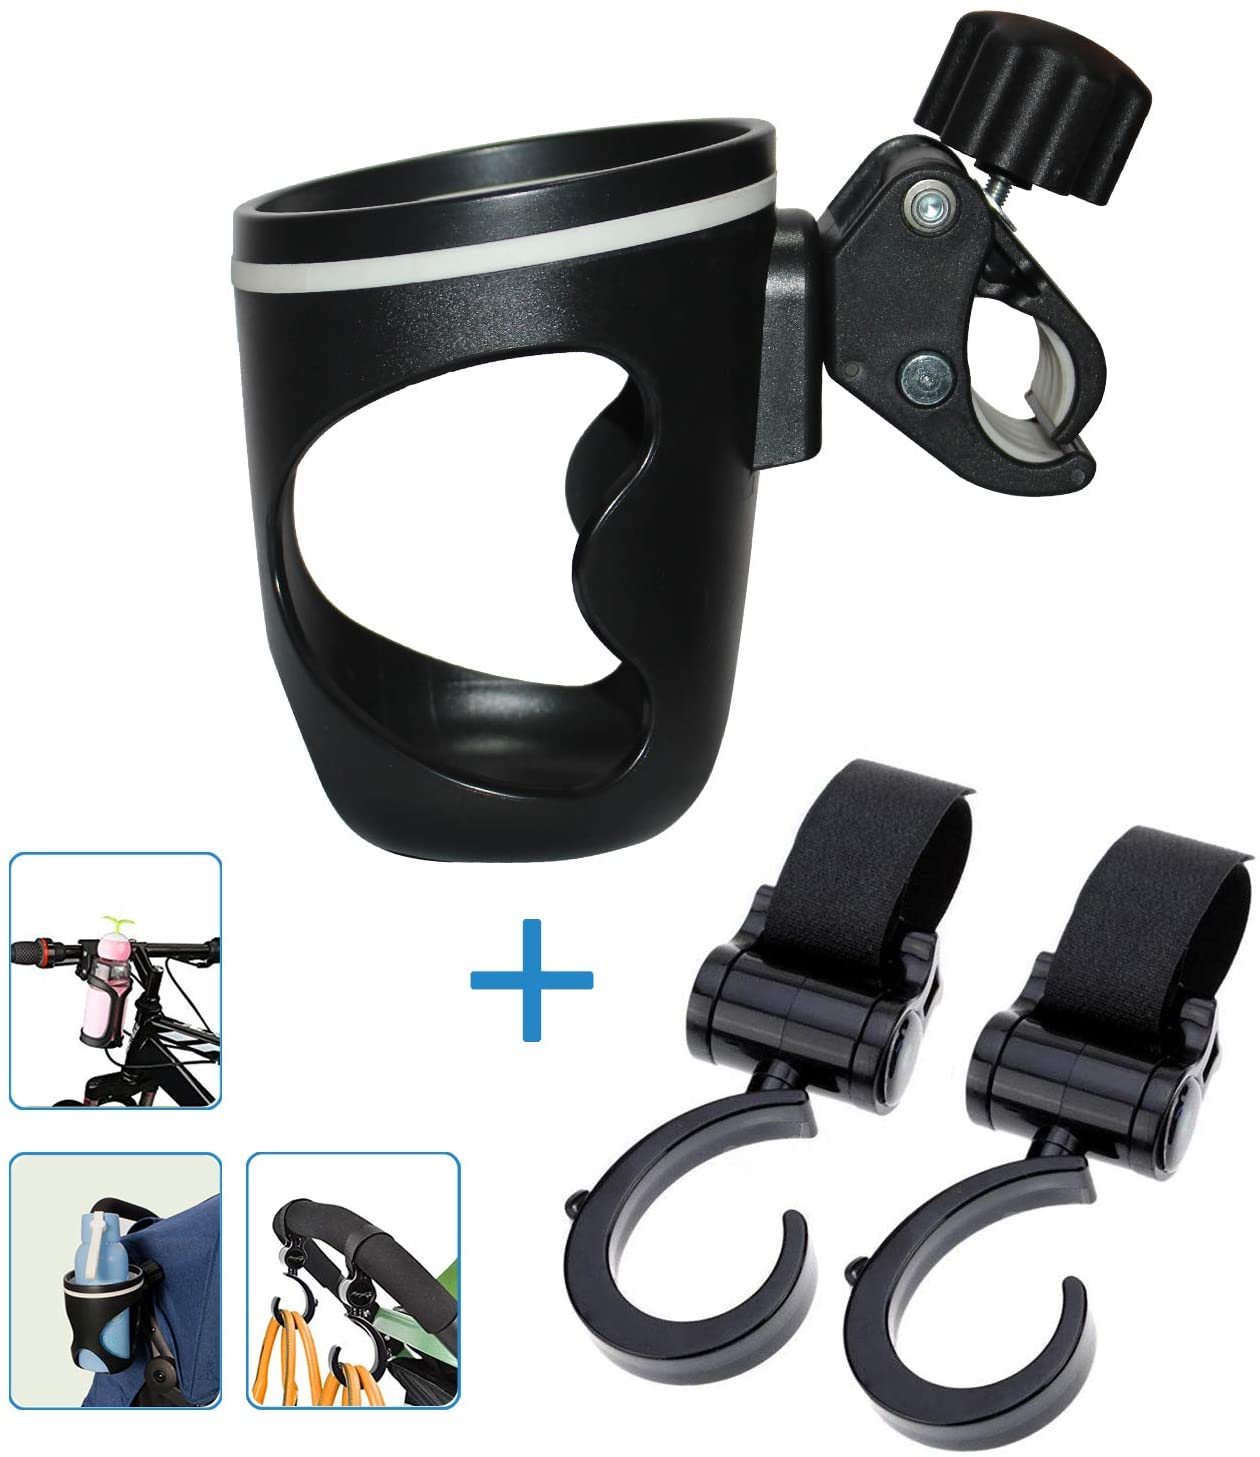 AOBETAK Pram cup holder, Water Bottle holder for pushchair with two clips hook, universal cup holder for wheelchair stroller bike Bicycle Moutainbike baby jogger coffee children prams, Black